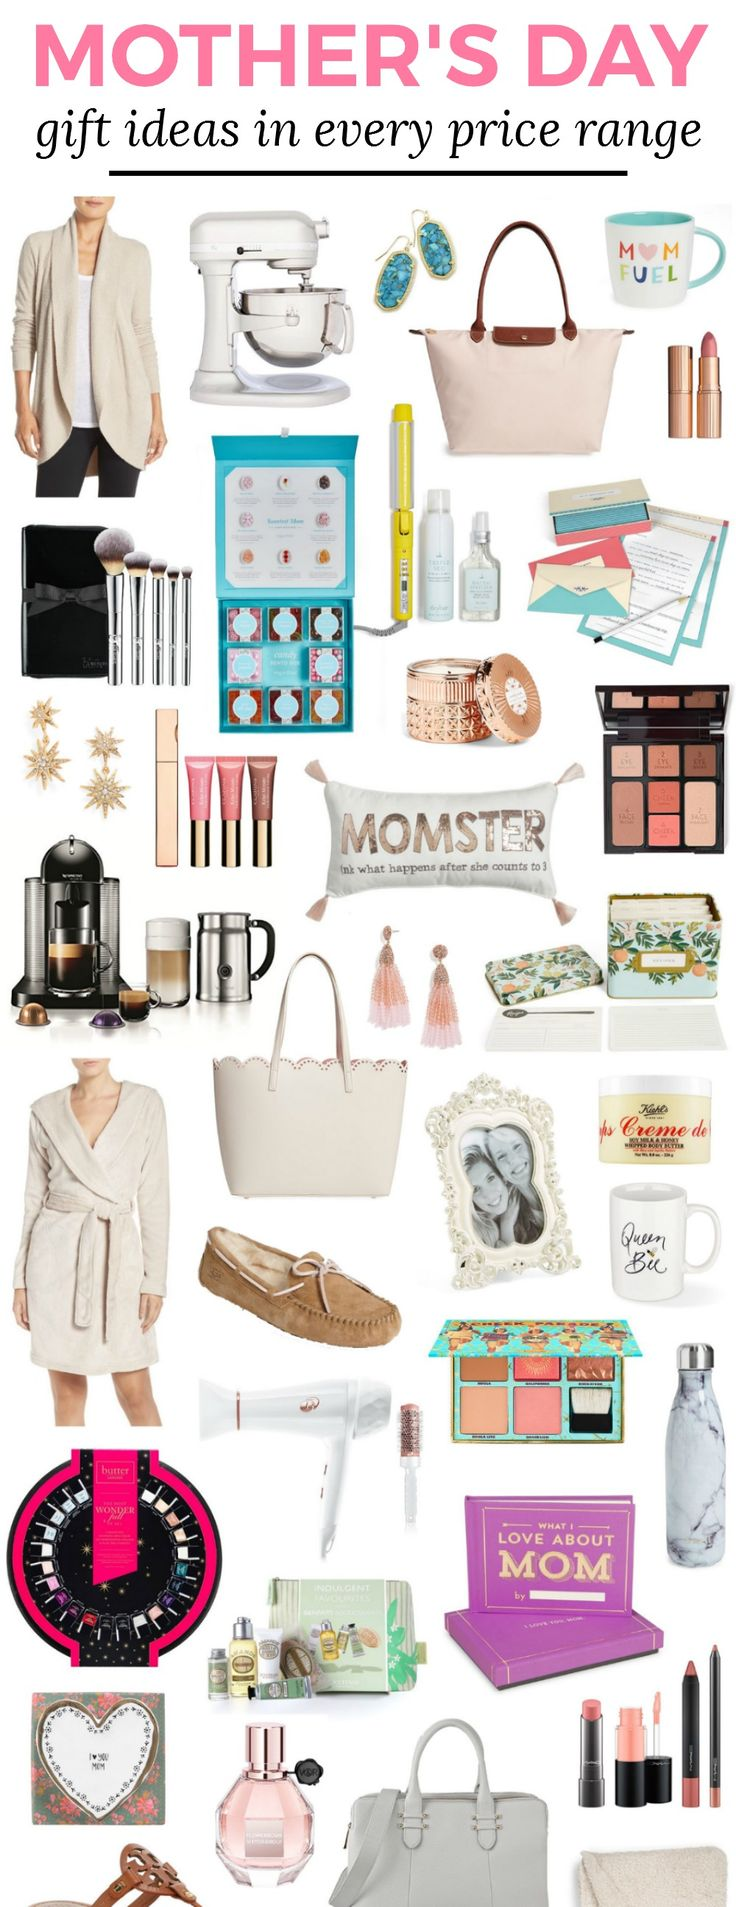 25 unika best mothers day gifts id er p pinterest for The best mothers day gift